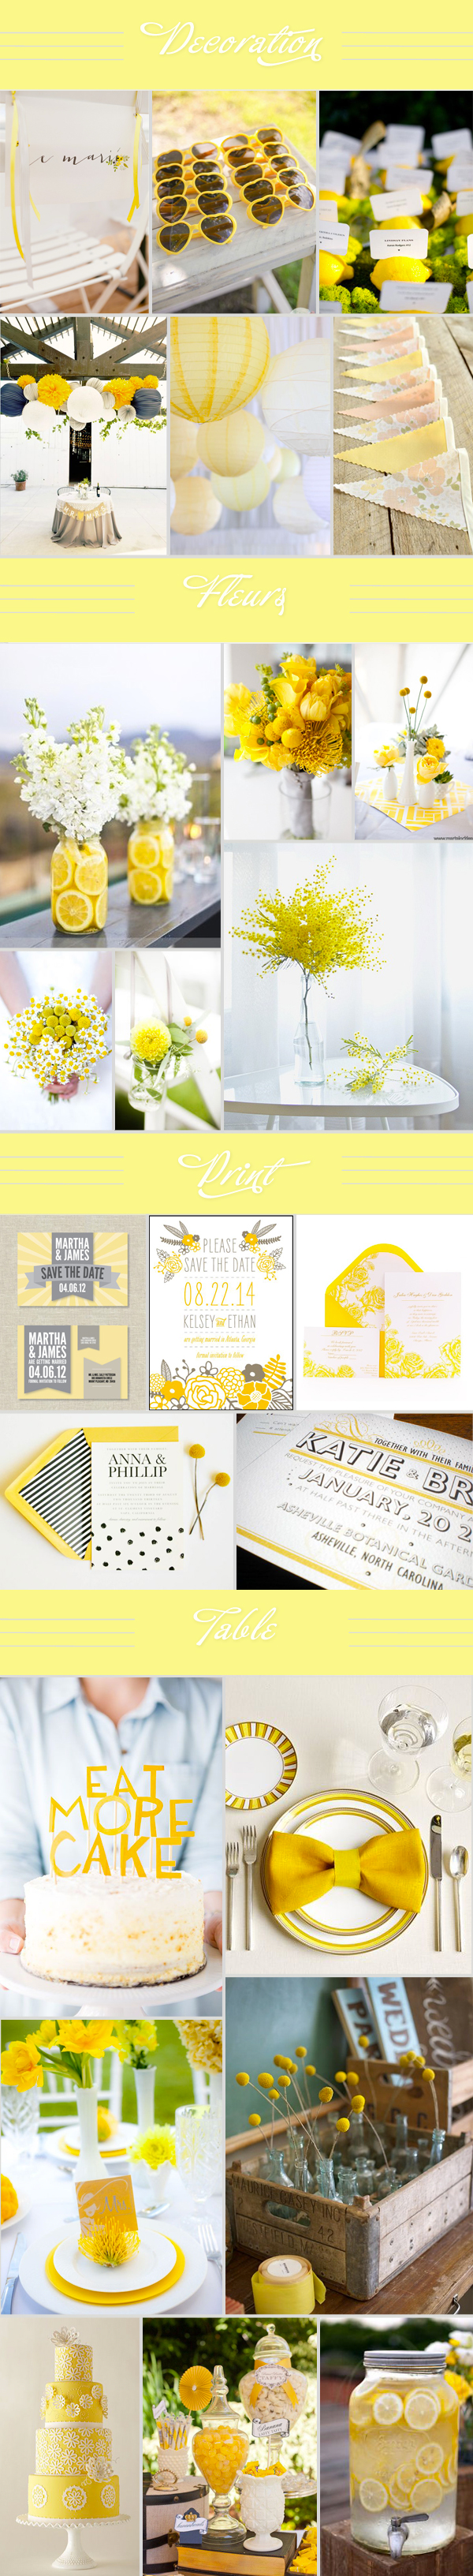 yellow-partytableau